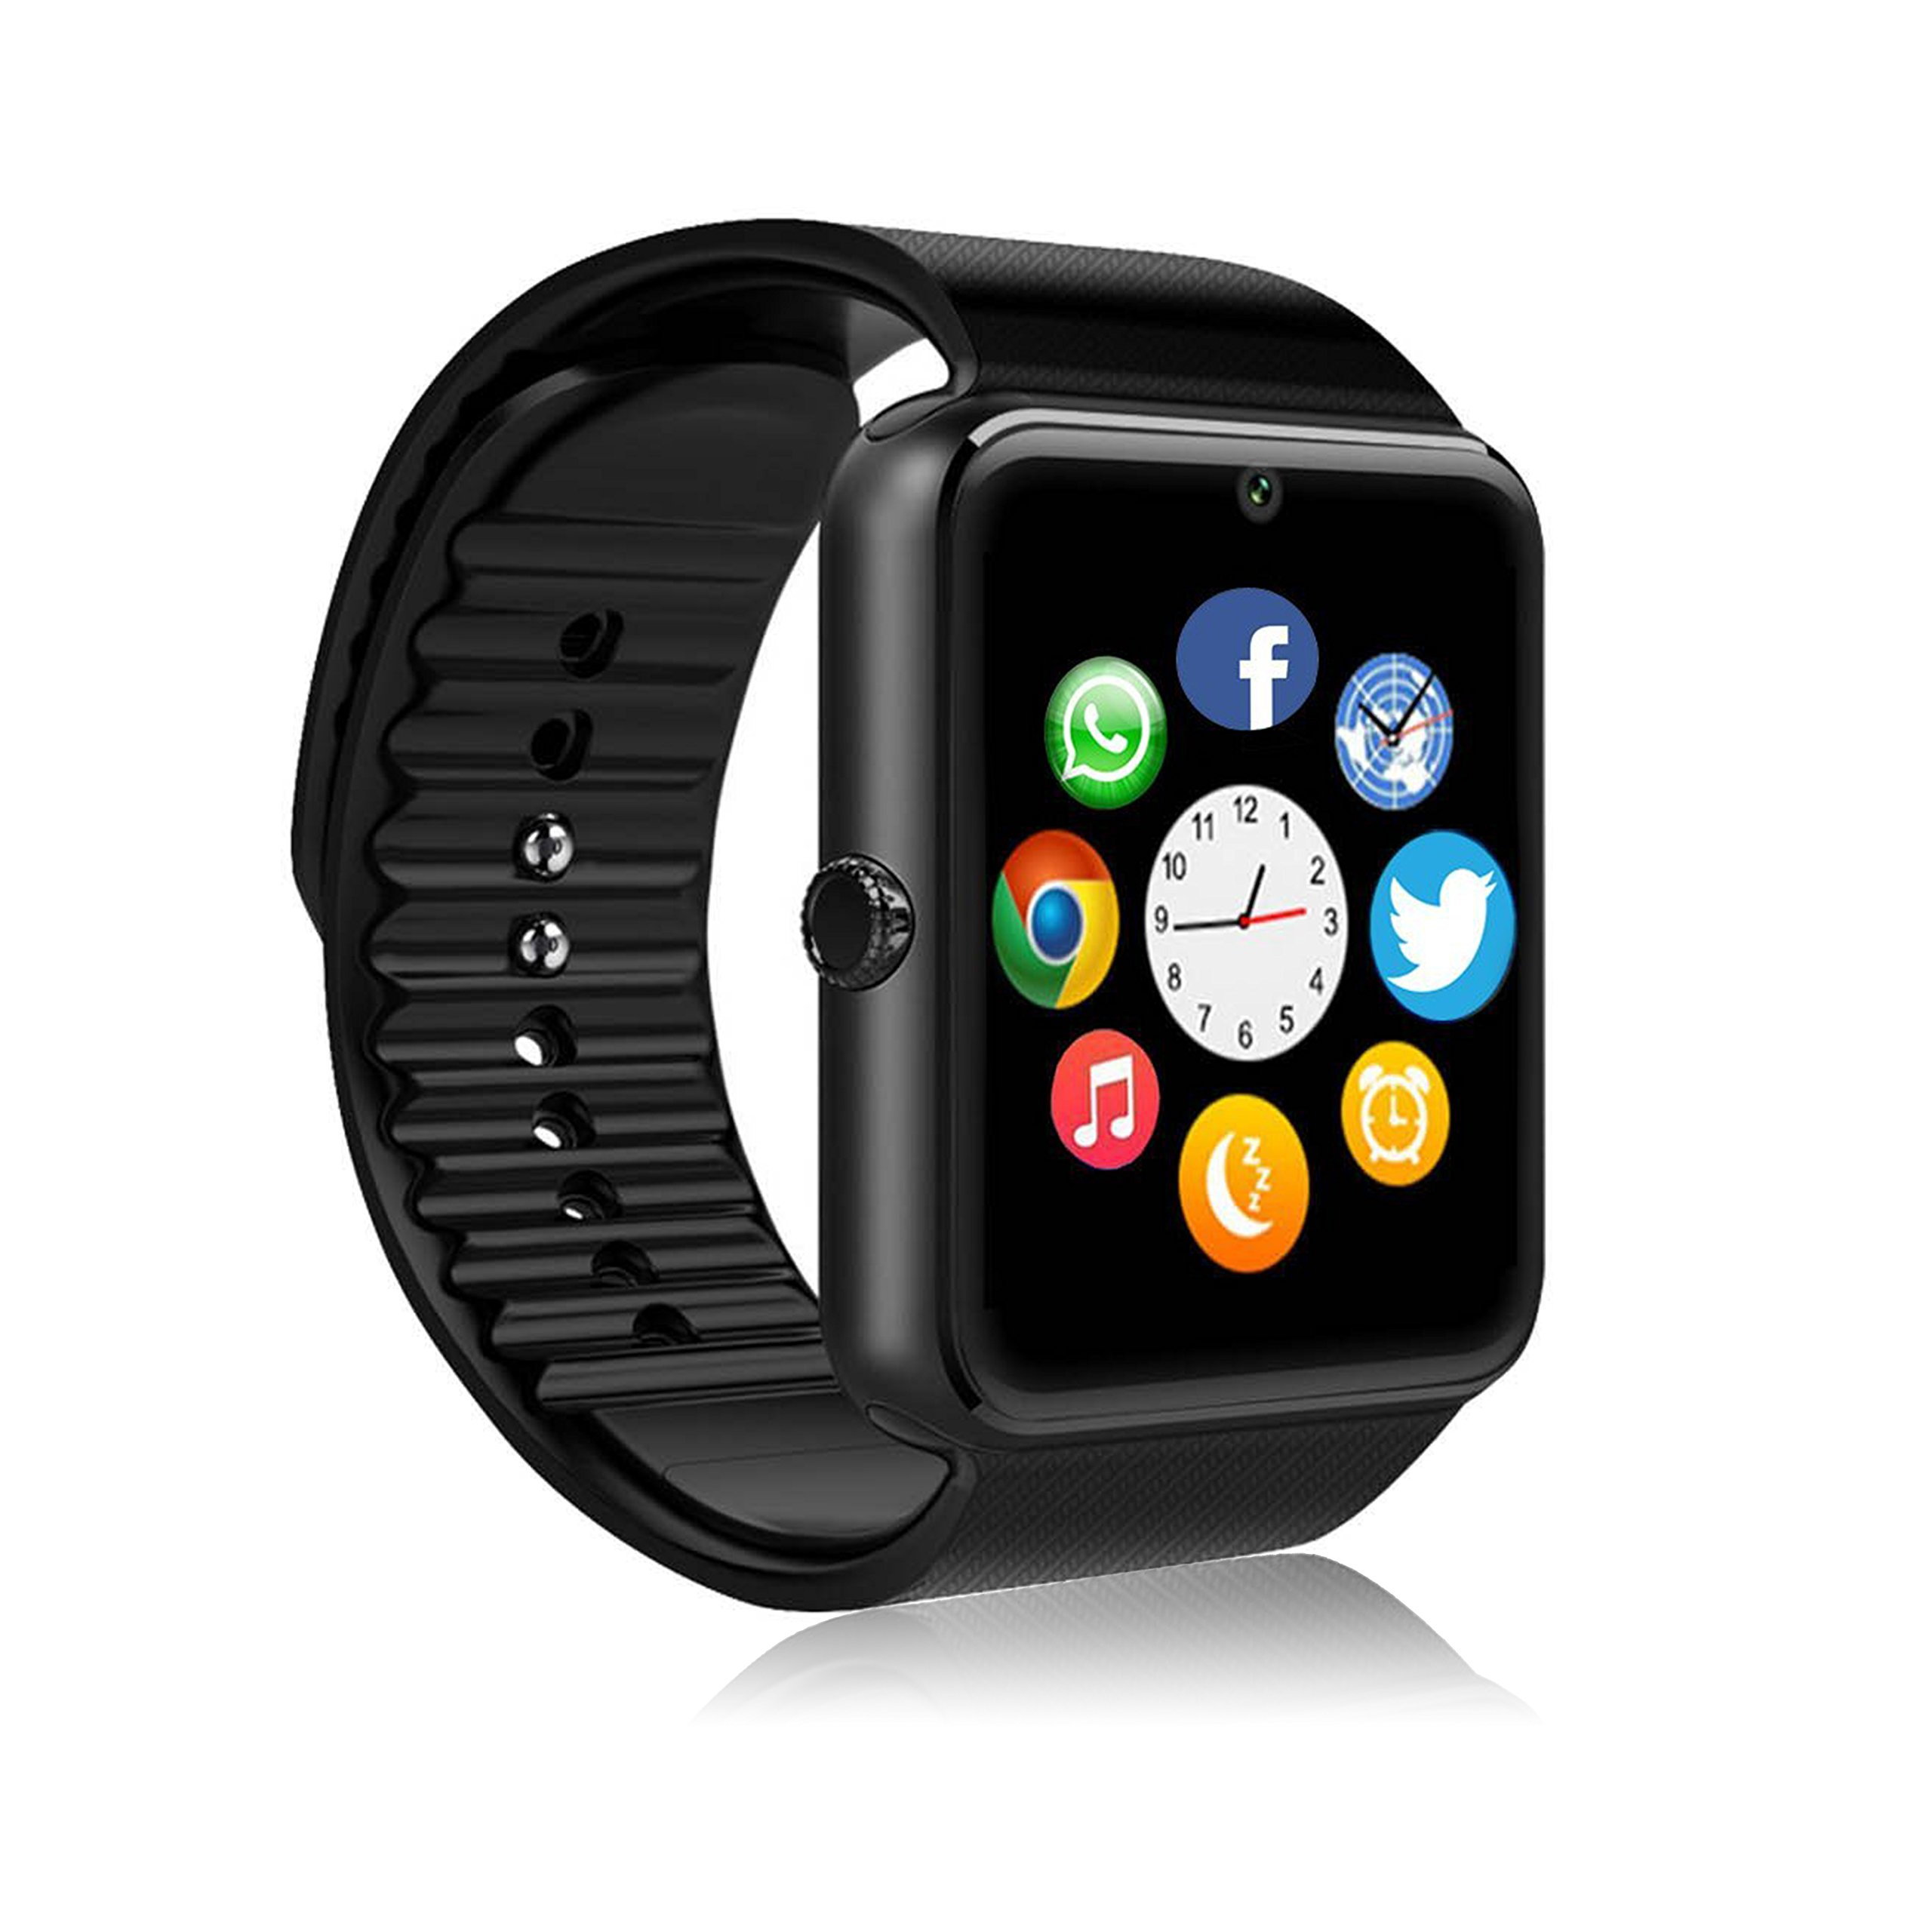 [2019 Upgraded] Smart Watch Compatible for iPhone 5s/6/6s/7/7s and Android 4.3 above, Anti Lost and Pedometer Fitness Tracker Sports Wristbands